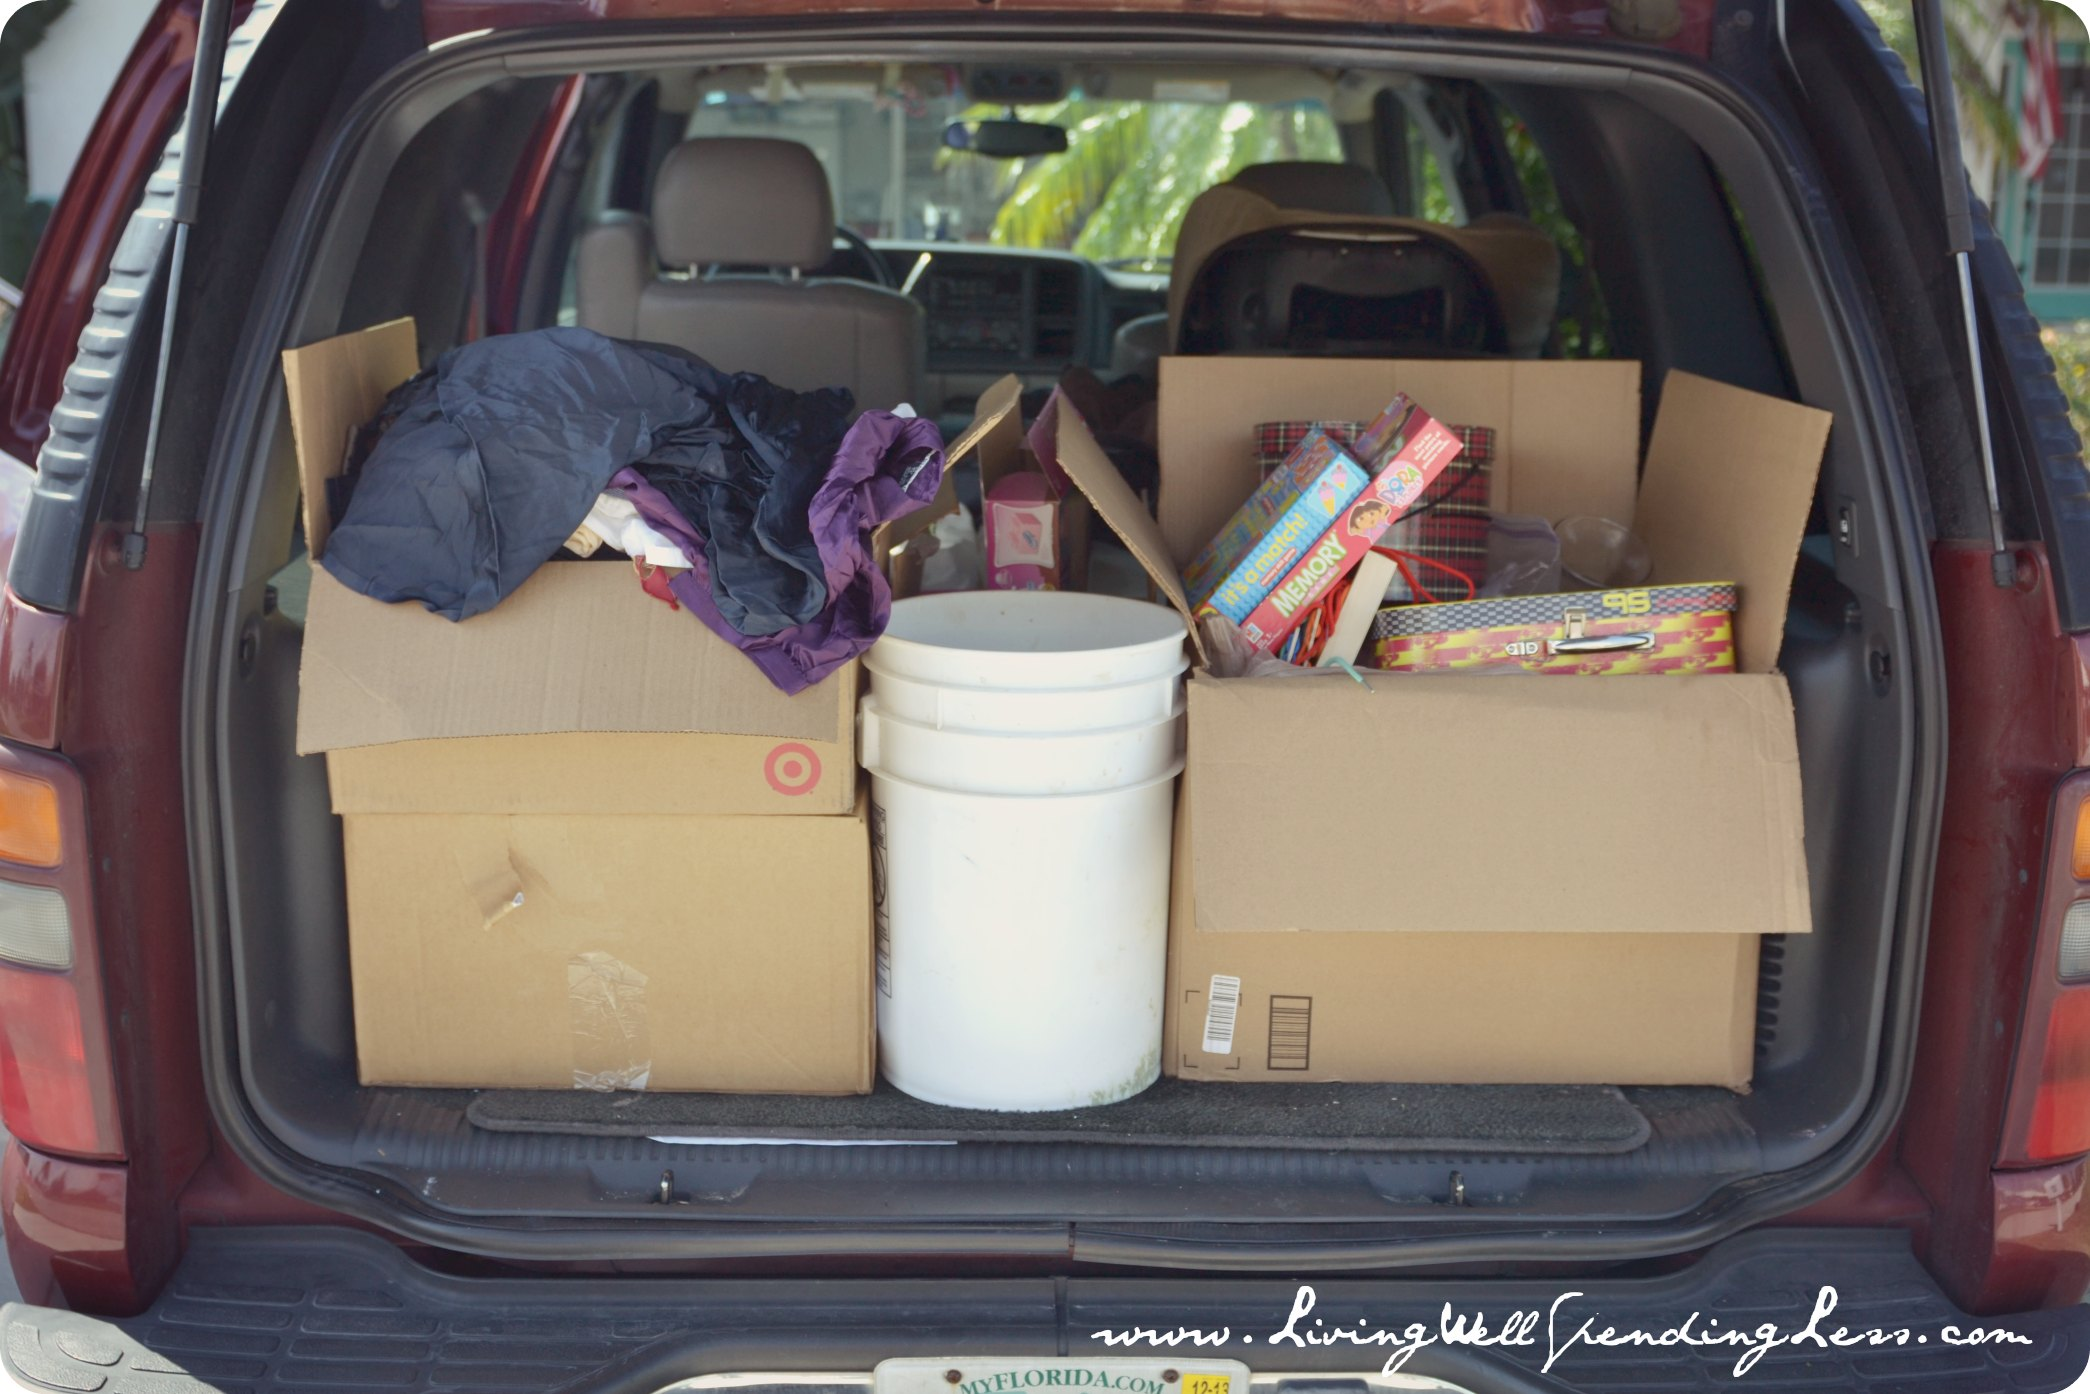 Pack up your clutter, put it in boxes, load it in the car and drive it to the nearest donation station. Clearing clutter can help you appreciate your space and gives it an instant update.